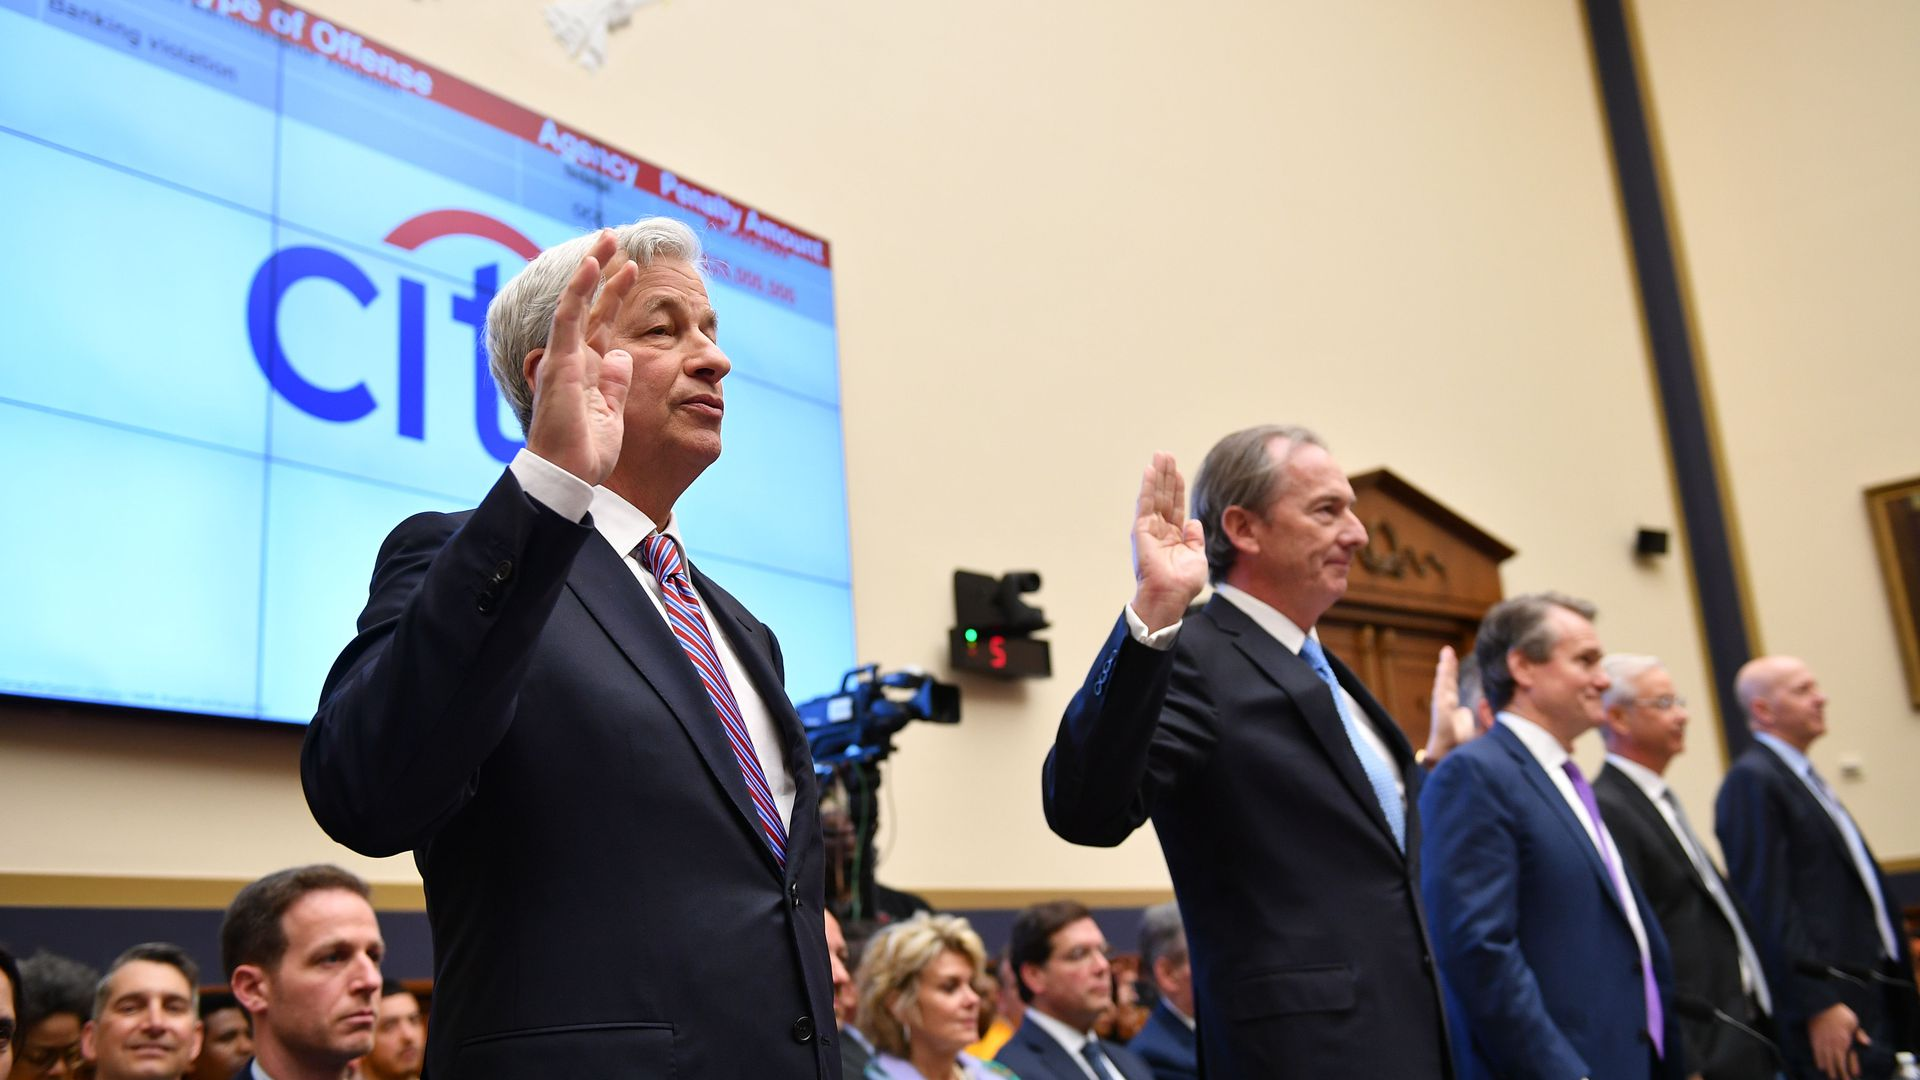 JP Morgan CEO James Dimon(L) and others are sworn in before they testify before the House Financial Services Committee